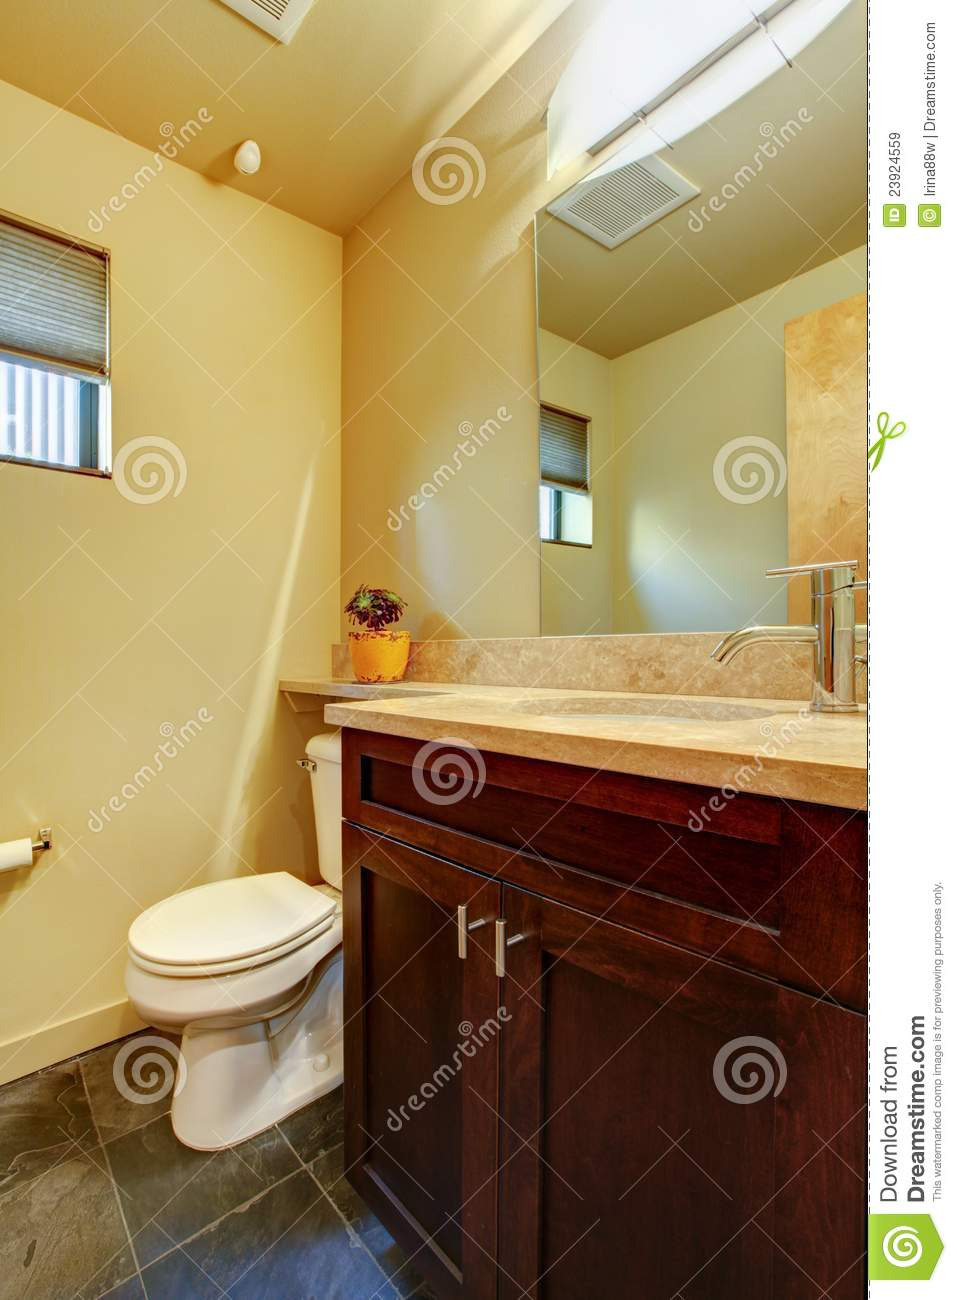 Small yellow bathroom with wood stock image image 23924559 for Small bathroom yellow